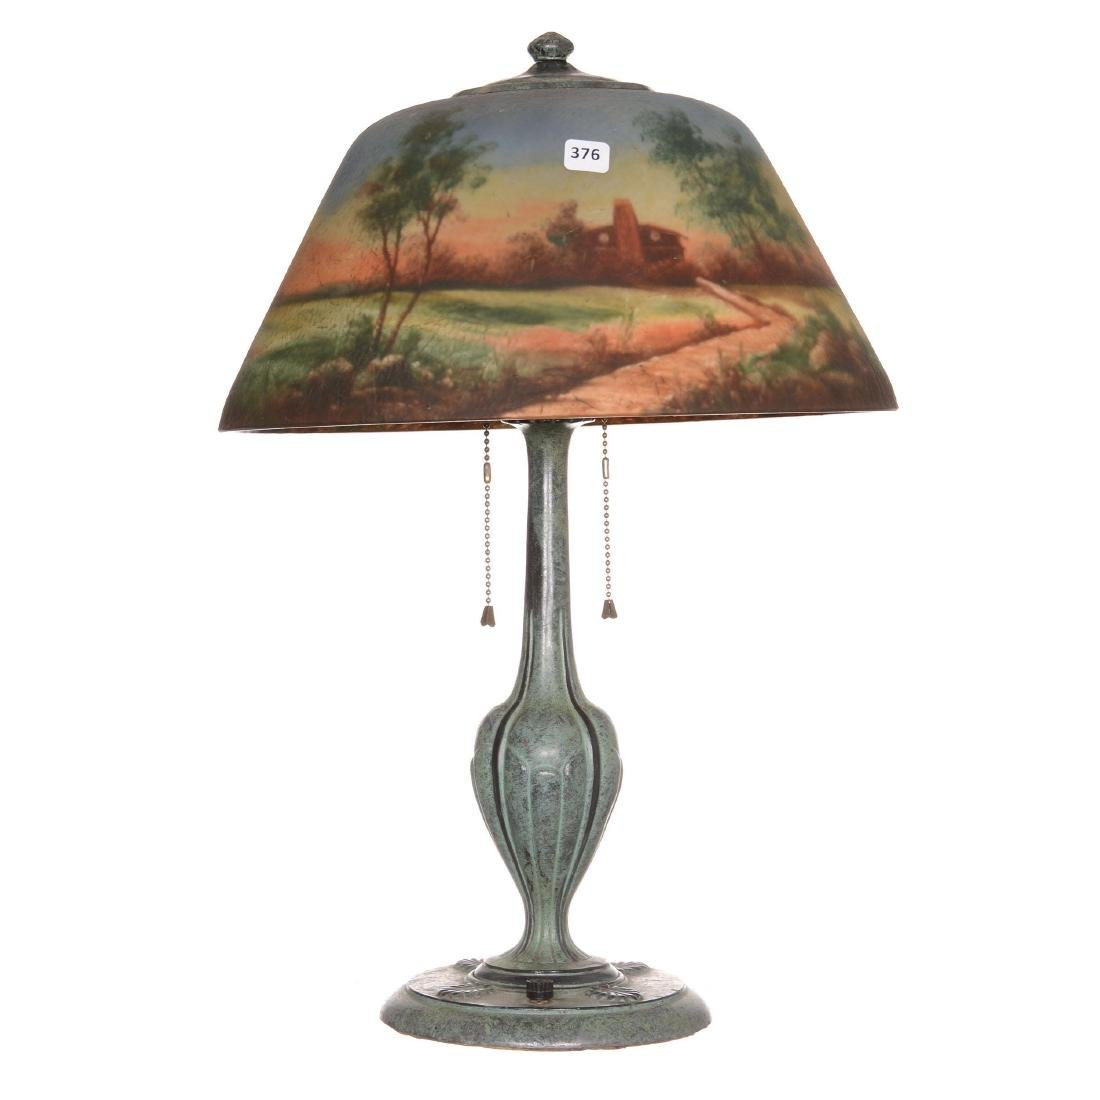 Original Jefferson Table Lamp